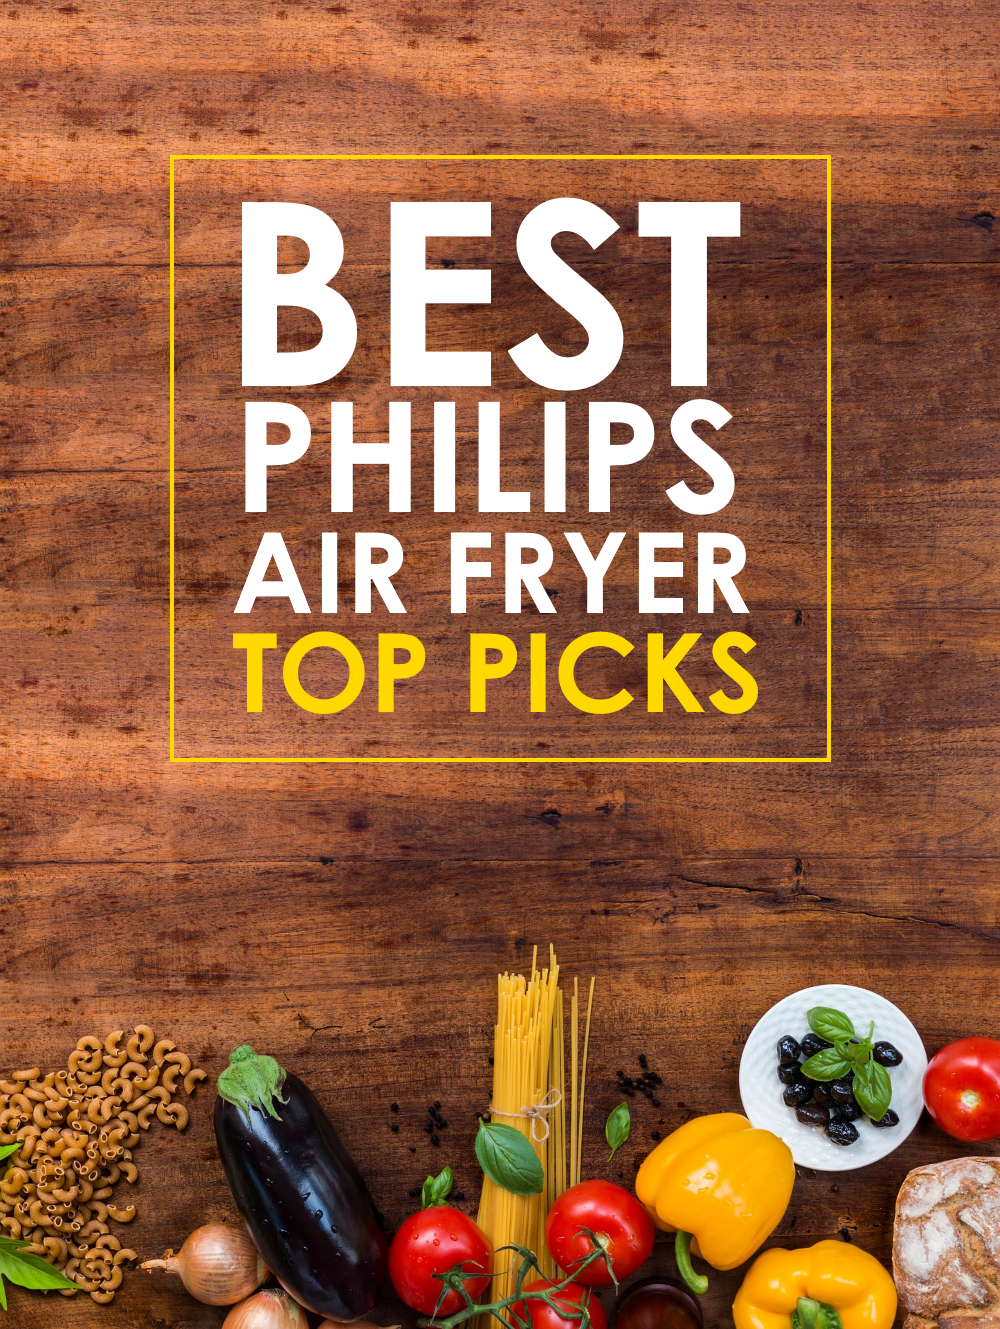 What is the Best Philips Airfryer